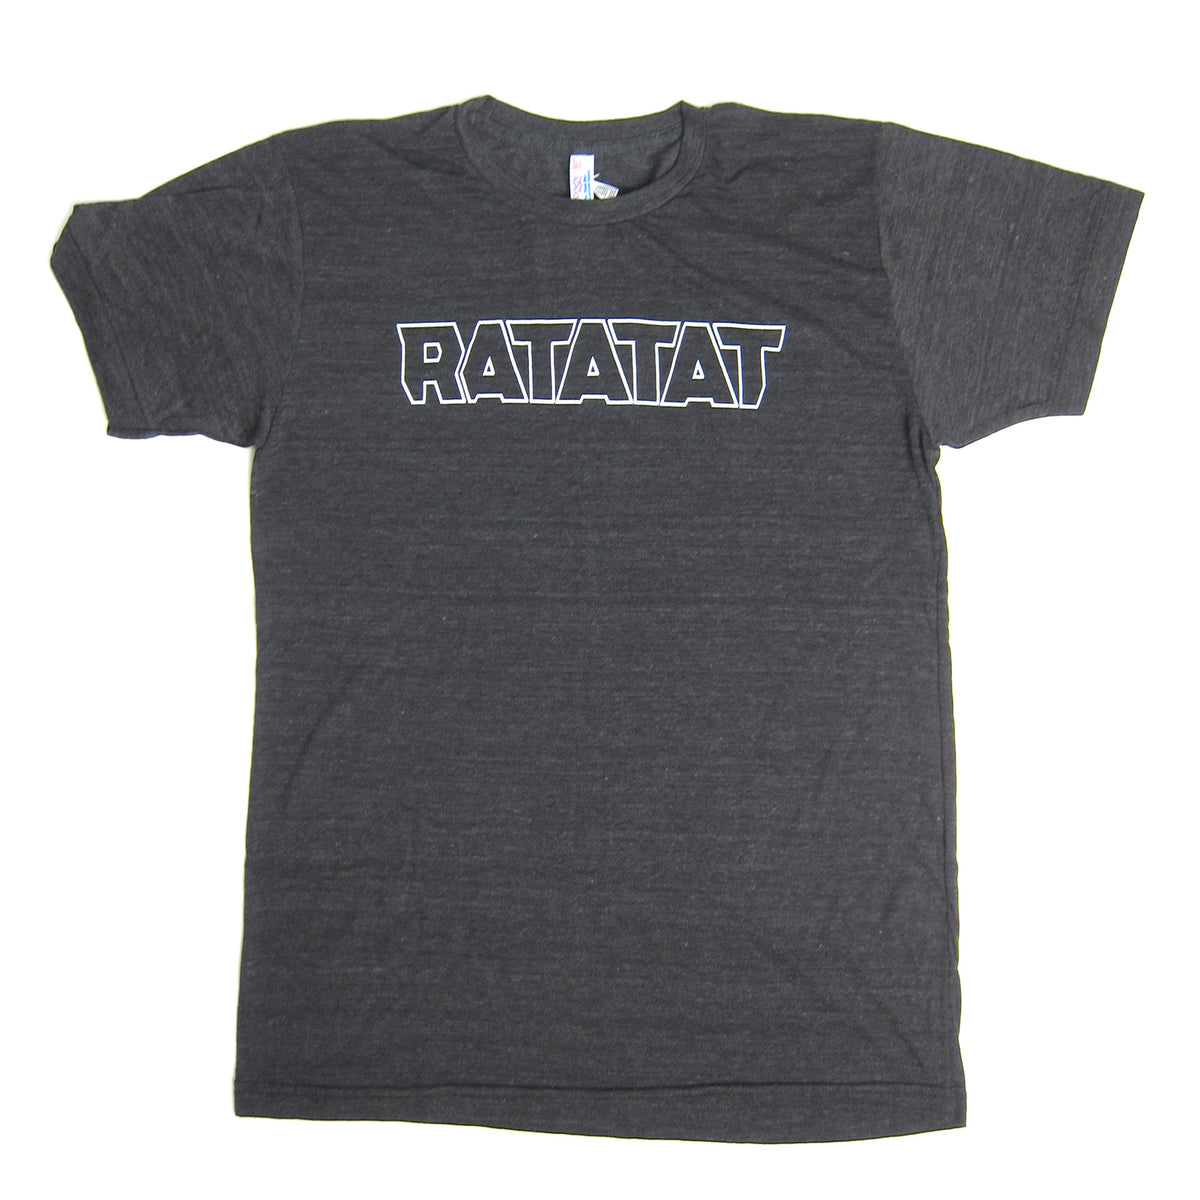 Ratatat: White Outline Logo Shirt - Black